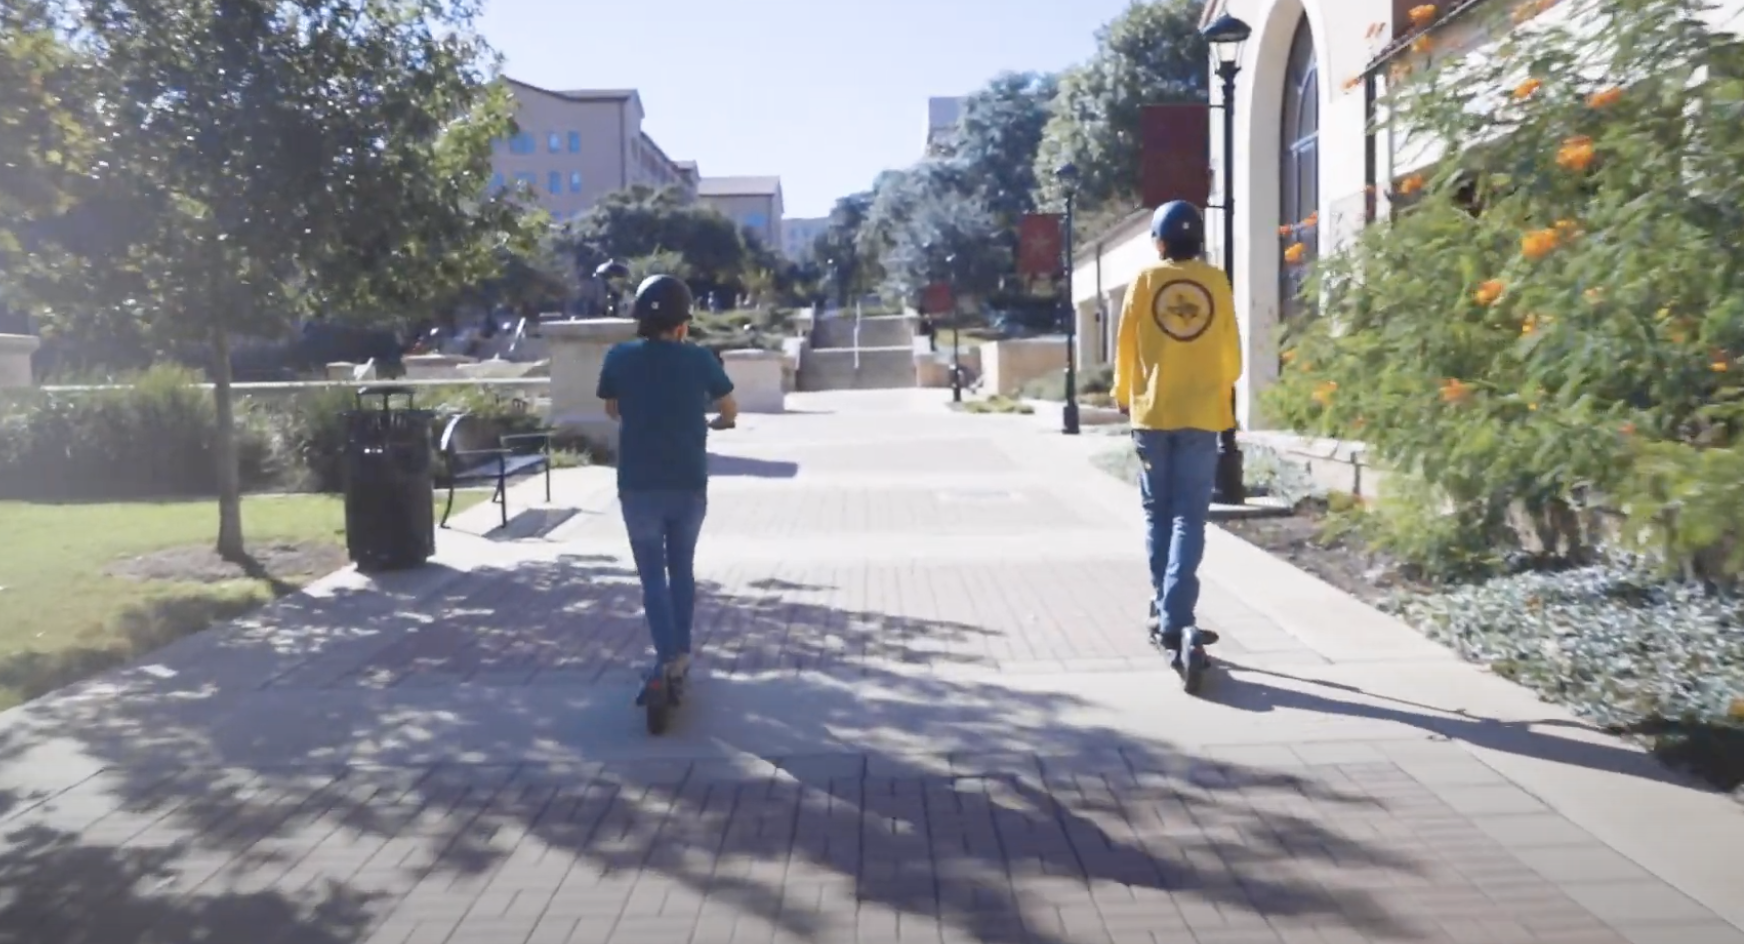 Students riding scooters at Texas State University campus